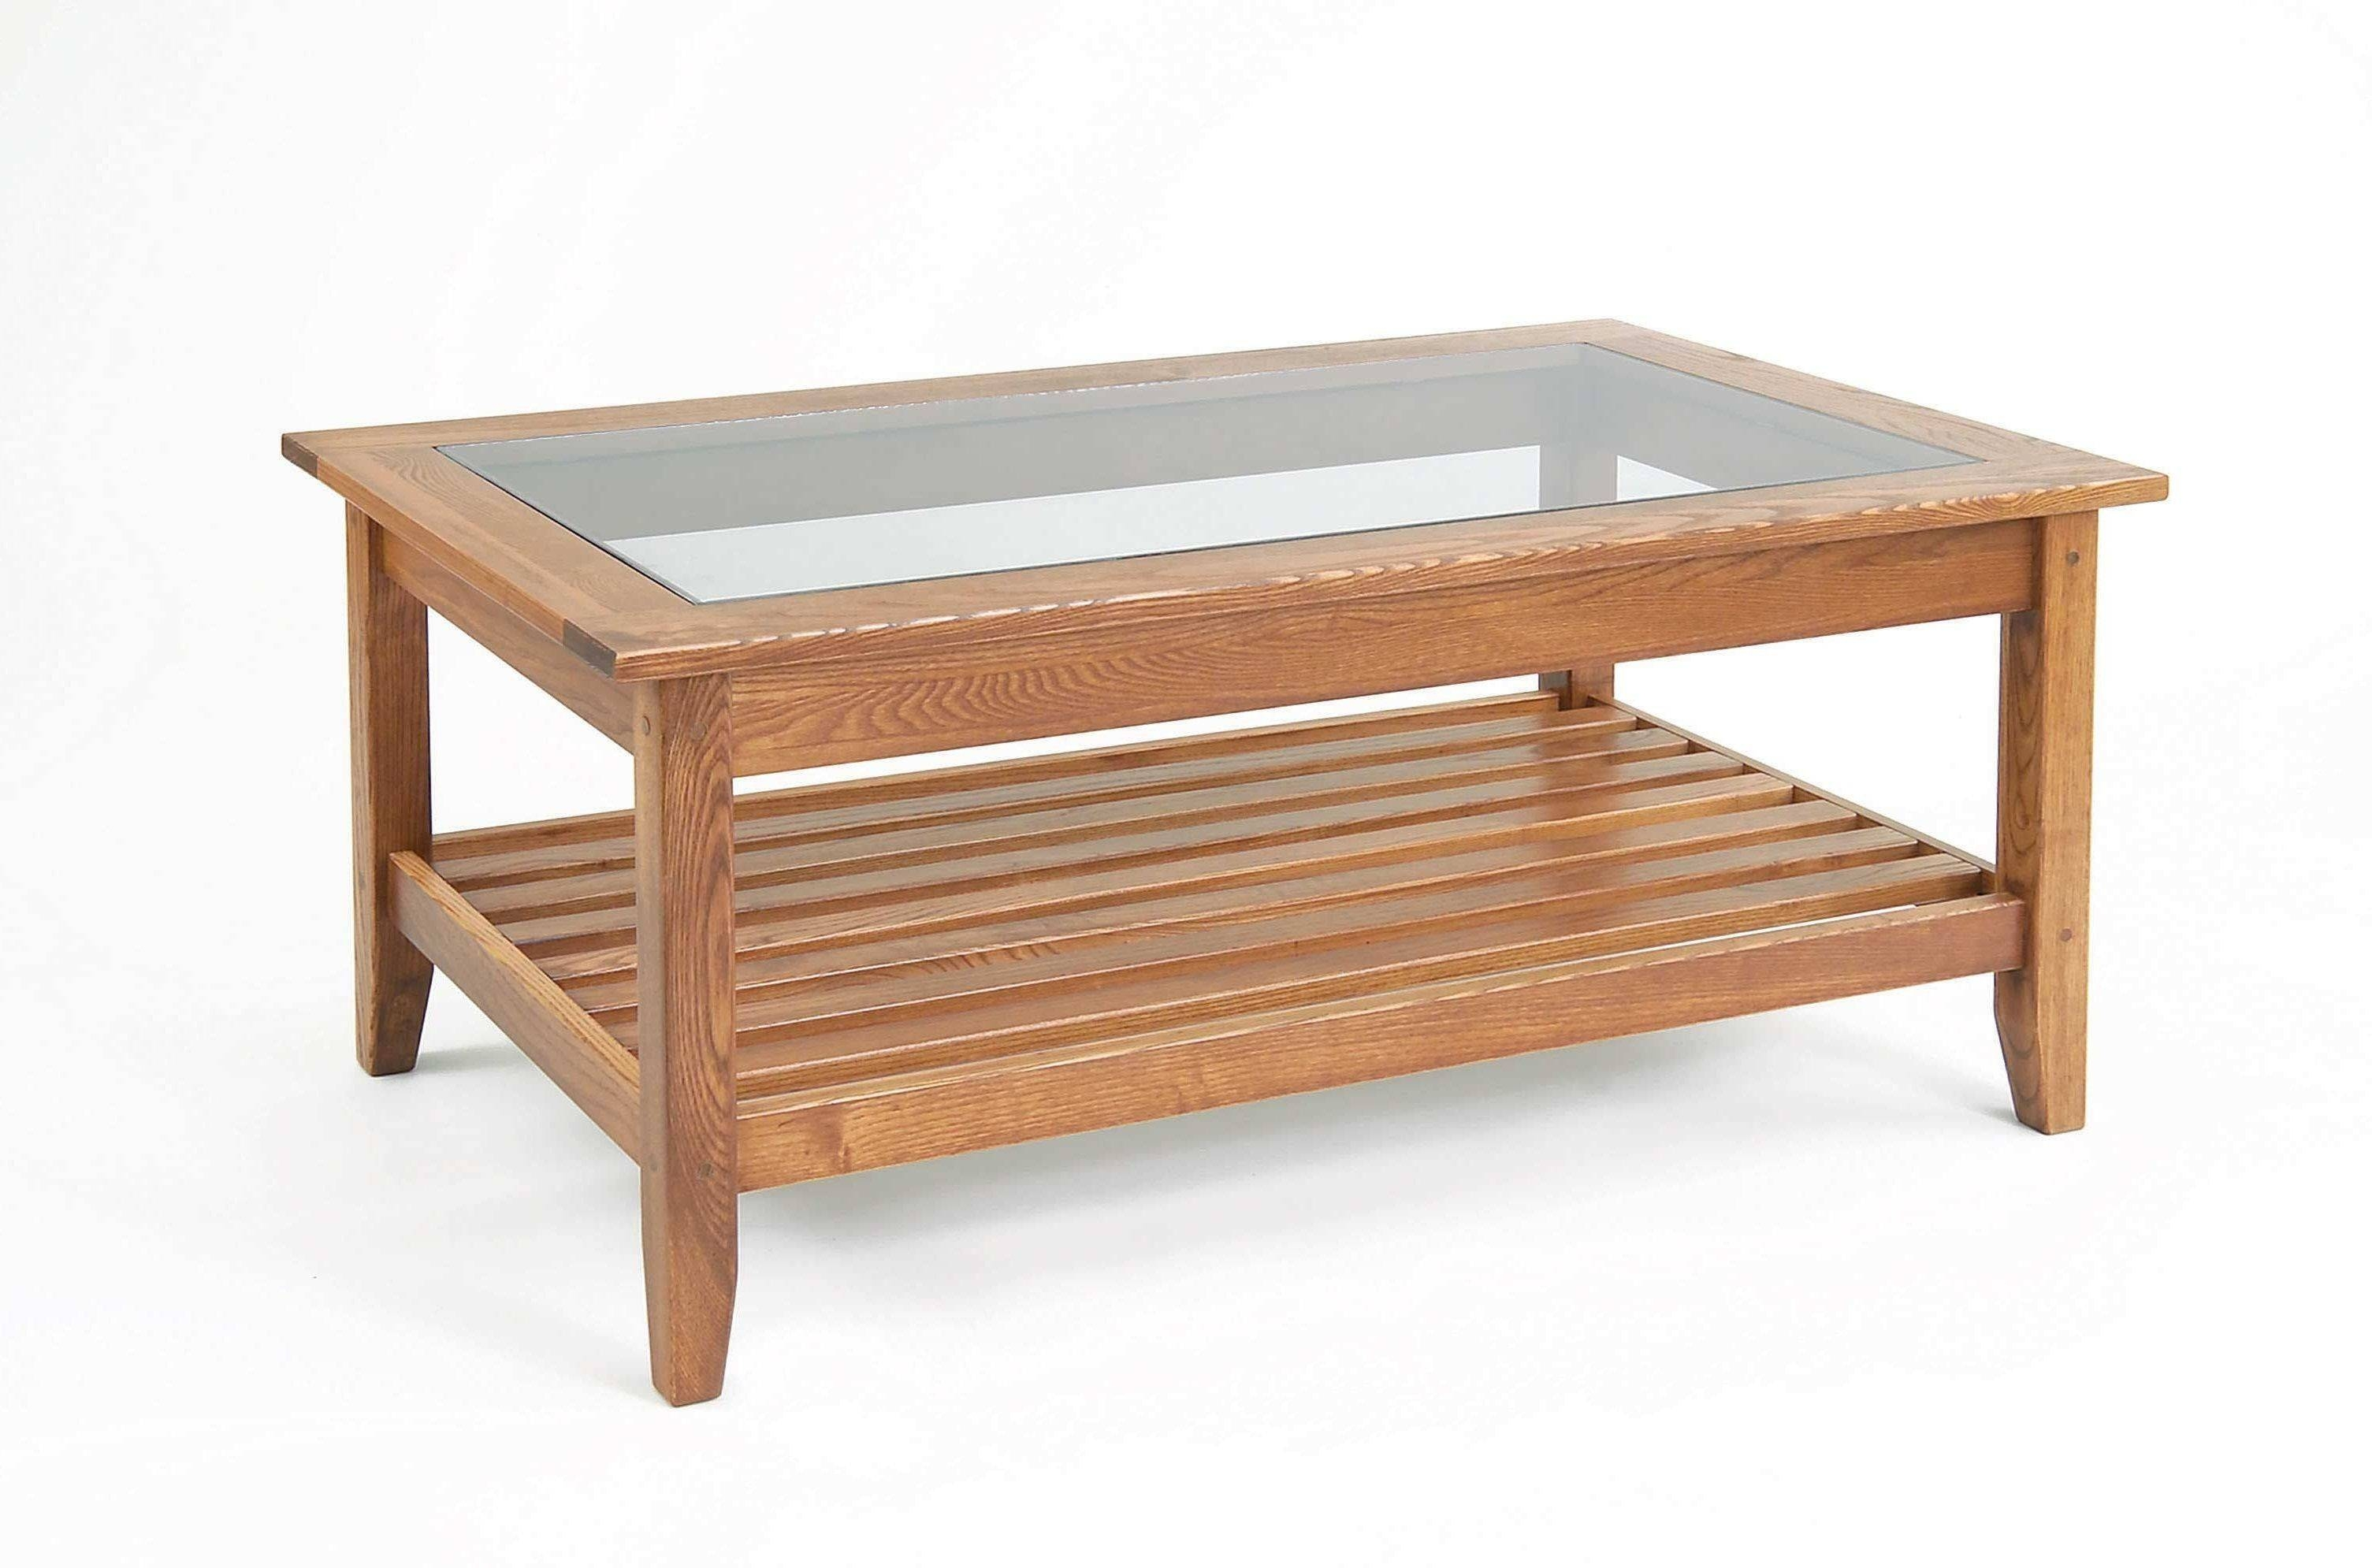 Wood Coffee Table With Glass Top - Karimbilal inside Antique Glass Top Coffee Tables (Image 30 of 30)